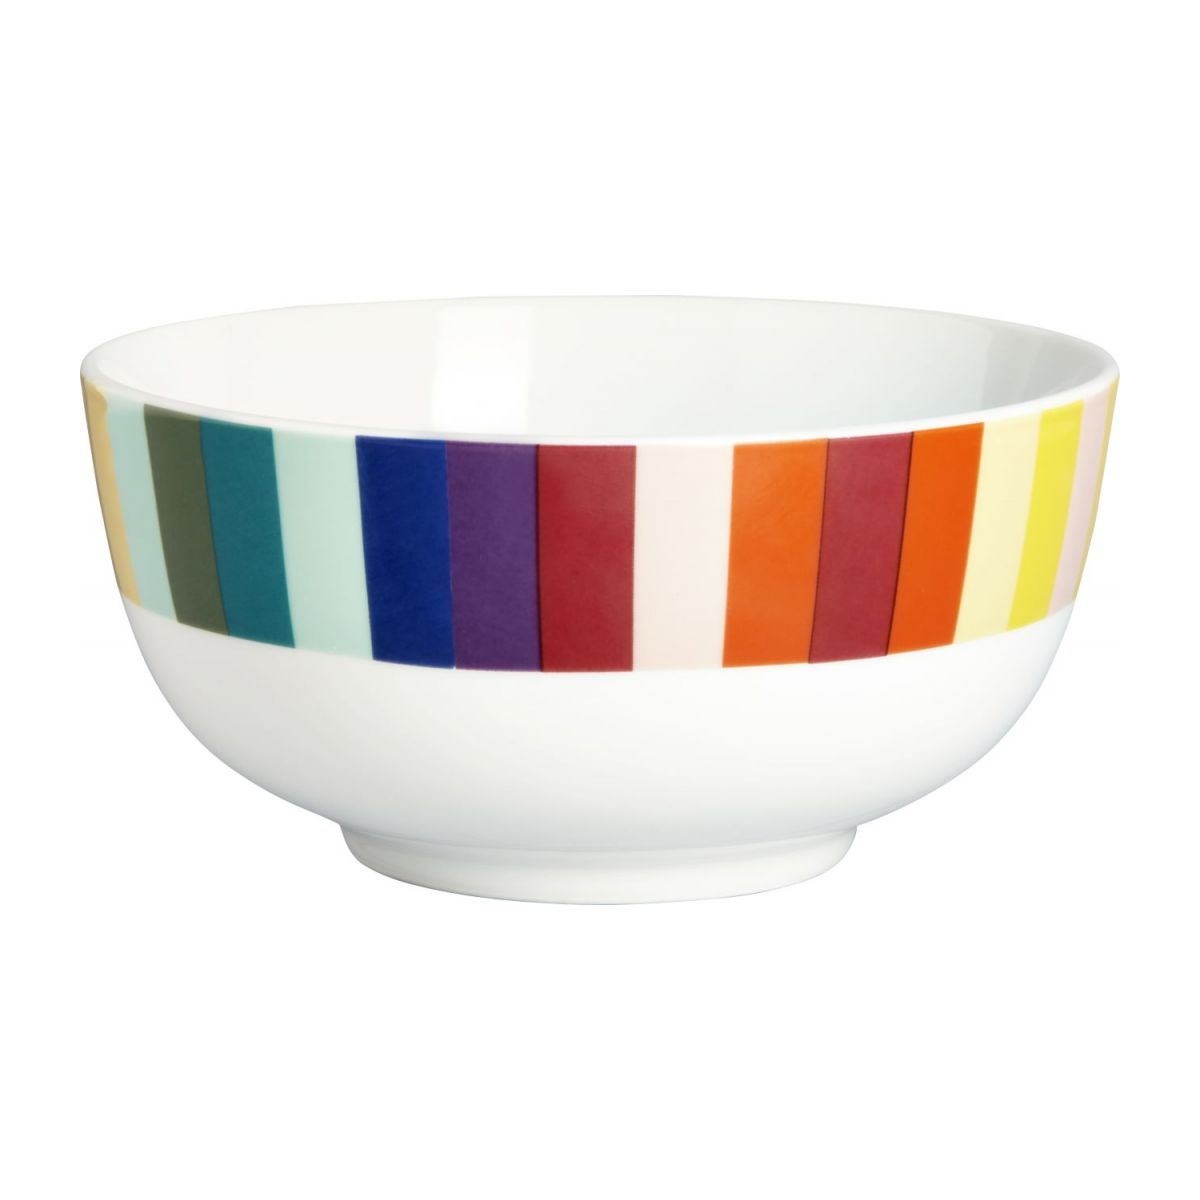 Set of 4 bowls n°1